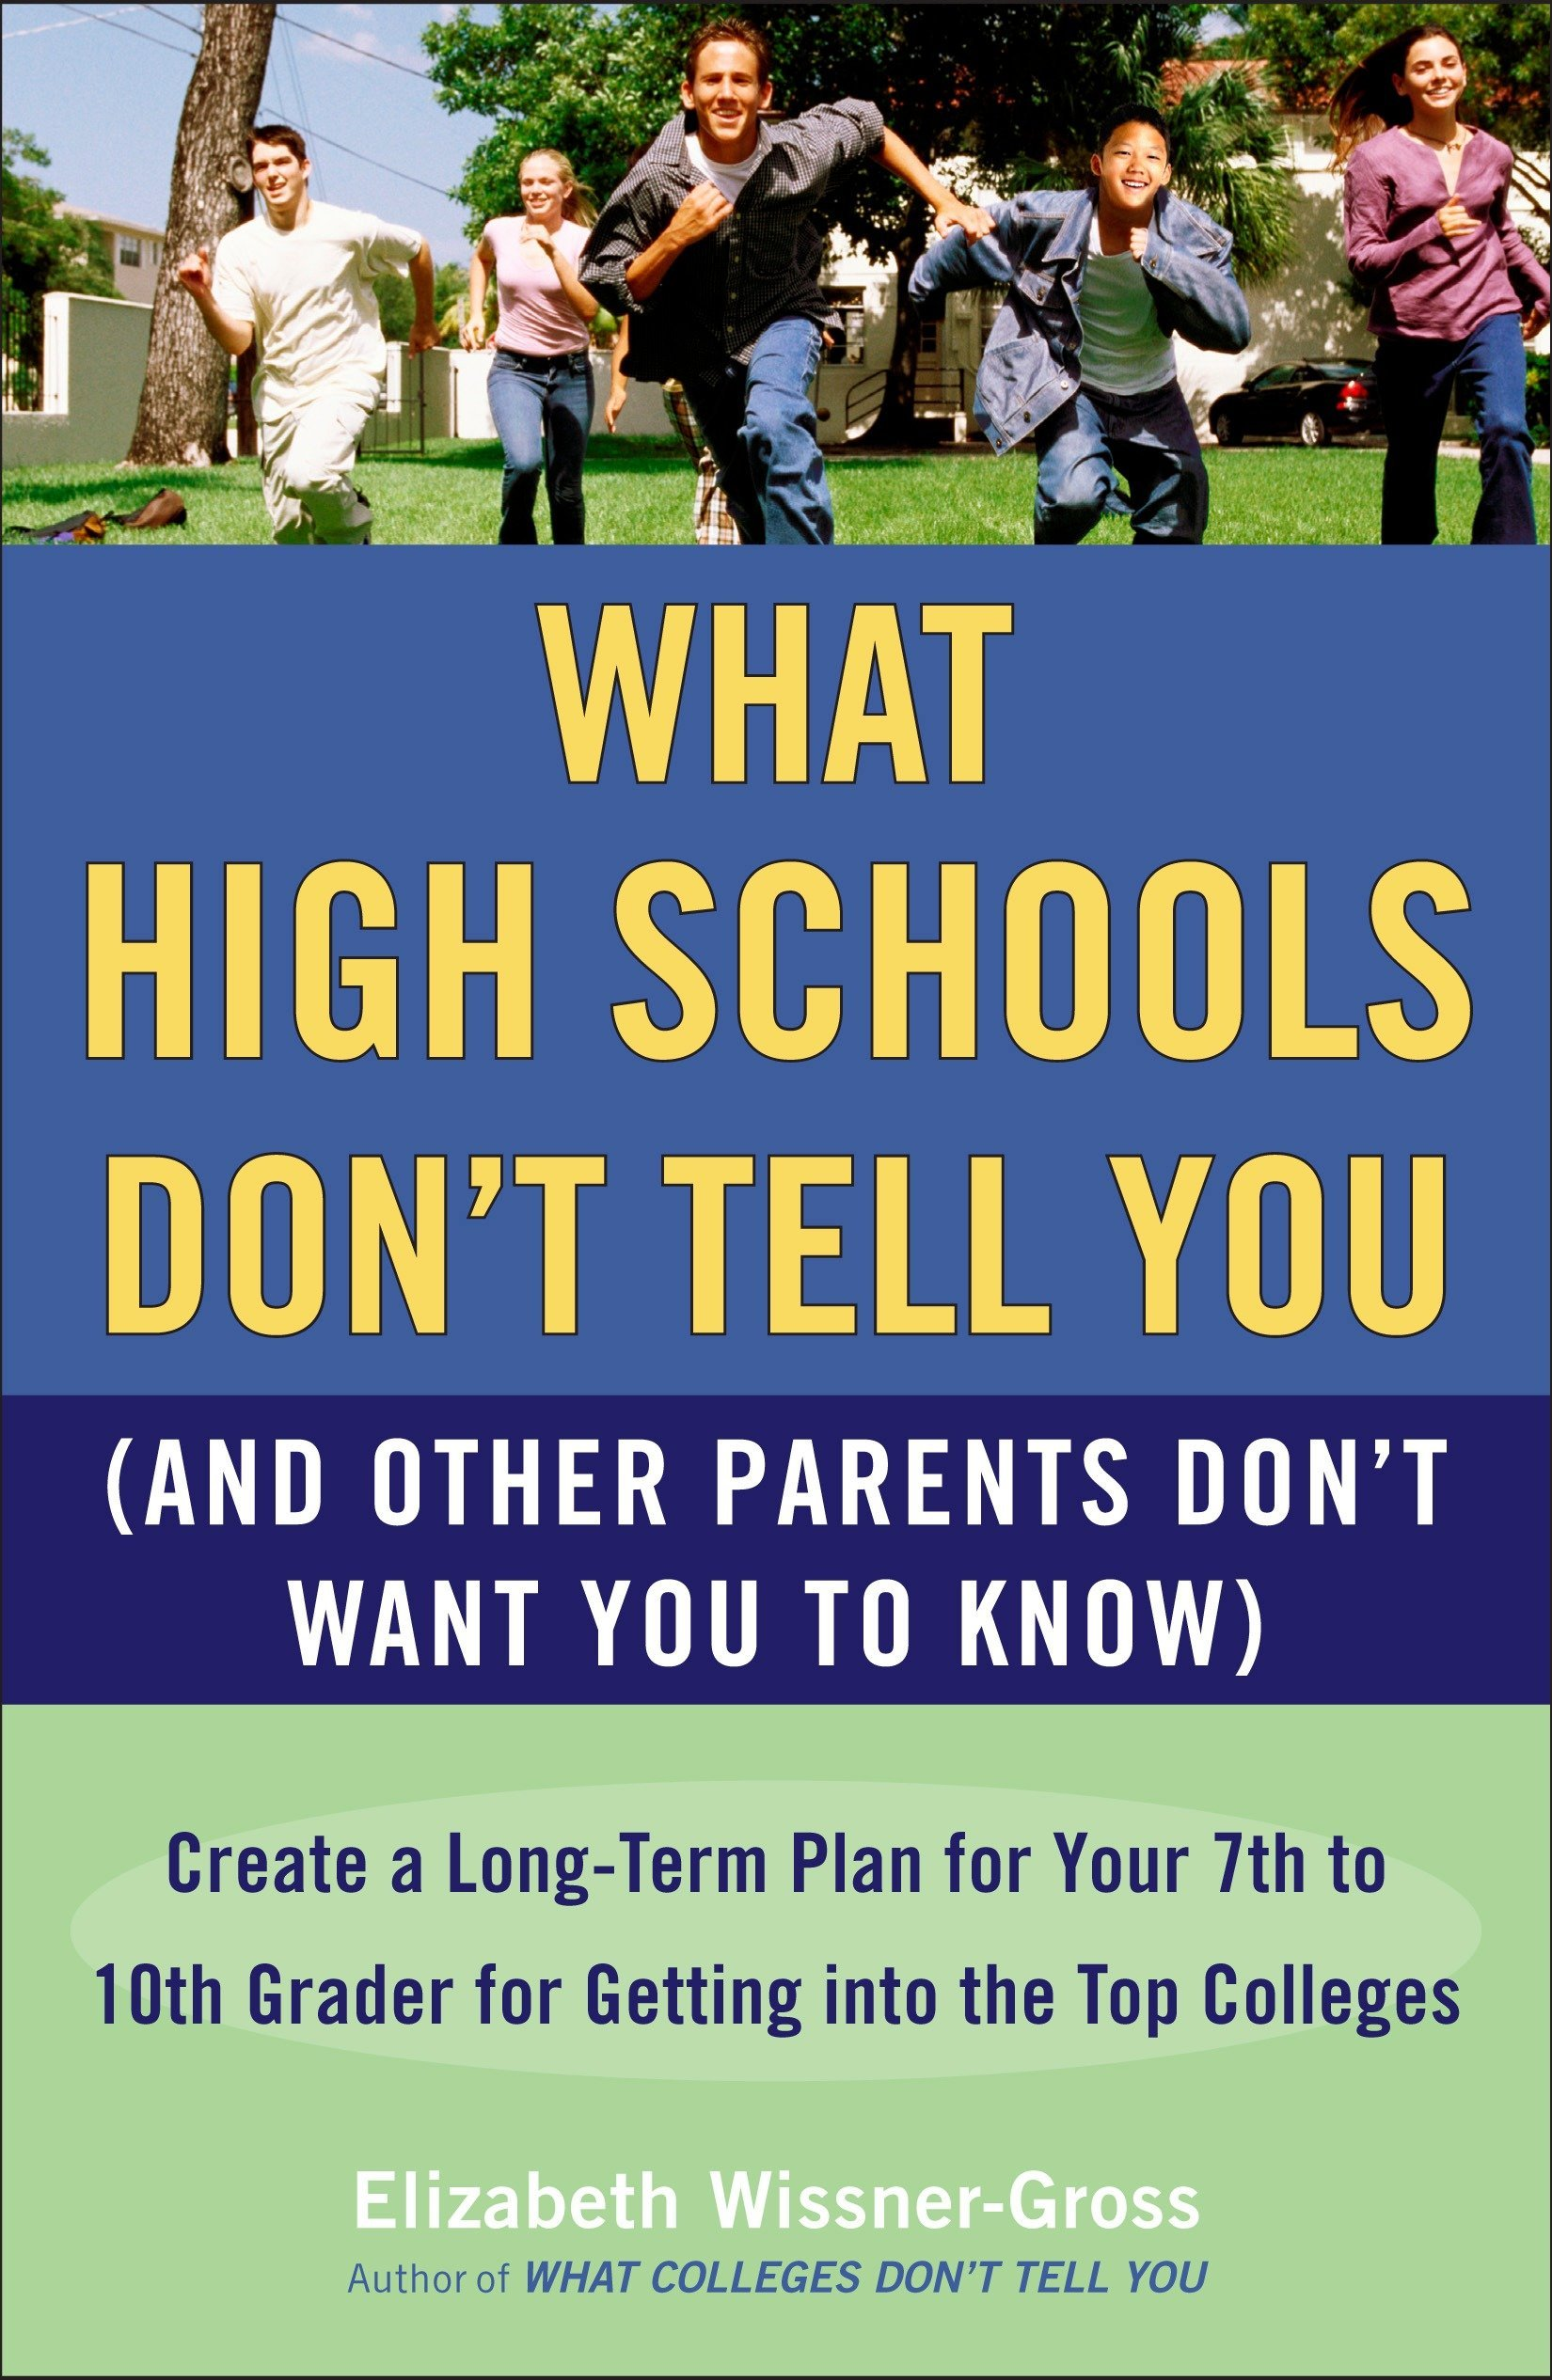 Amazon.com: What High Schools Don't Tell You (And Other Parents Don't Want  You toKnow): Create a Long-Term Plan for Your 7th to 10th Grader for  Getting into ...